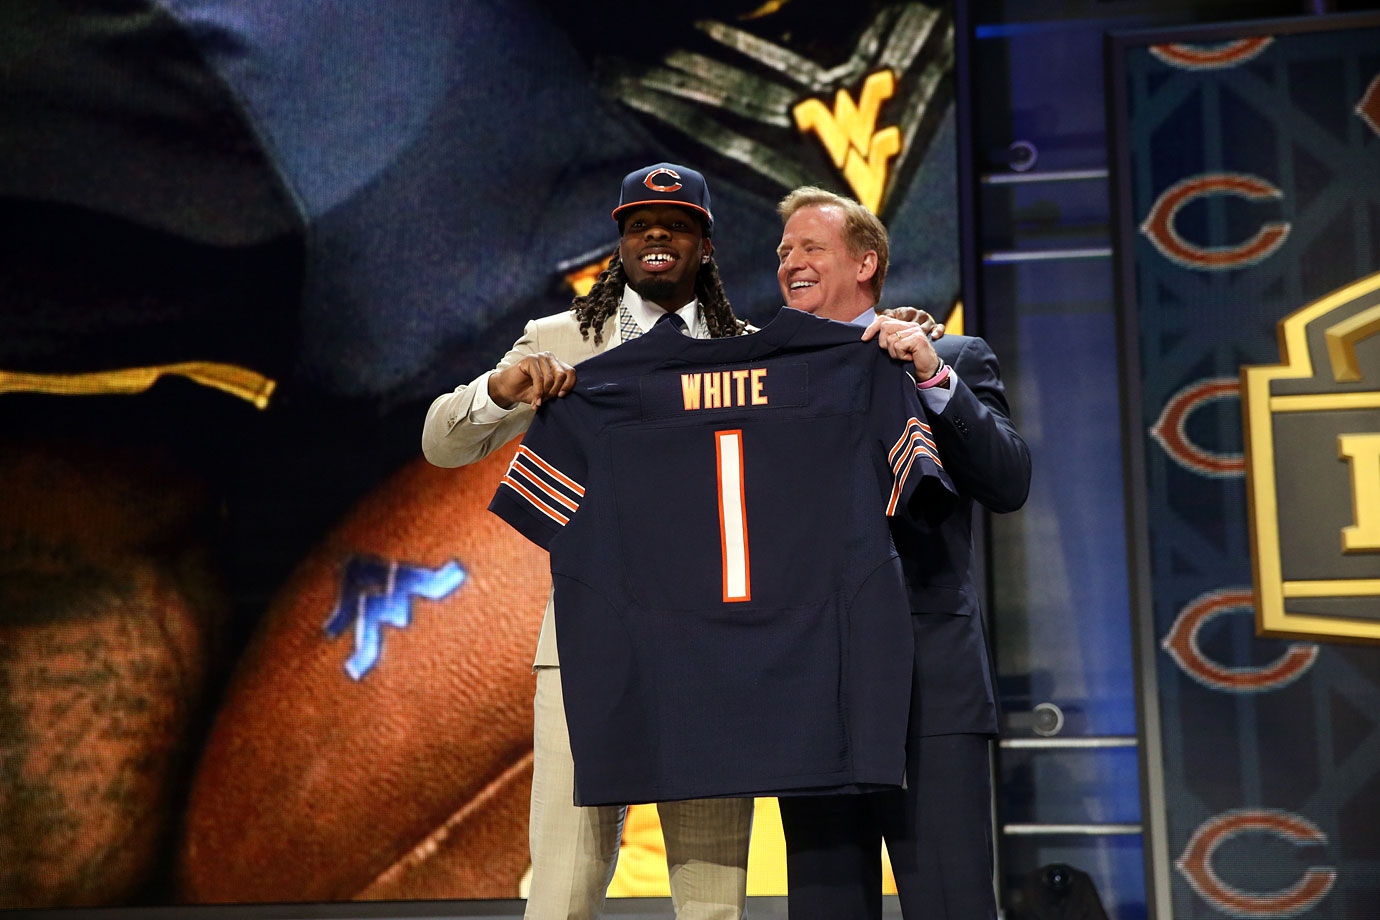 West Virginia wide receiver Kevin White shows off his new Bears jersey to the local crowd after being selected by Chicago with the seventh pick.